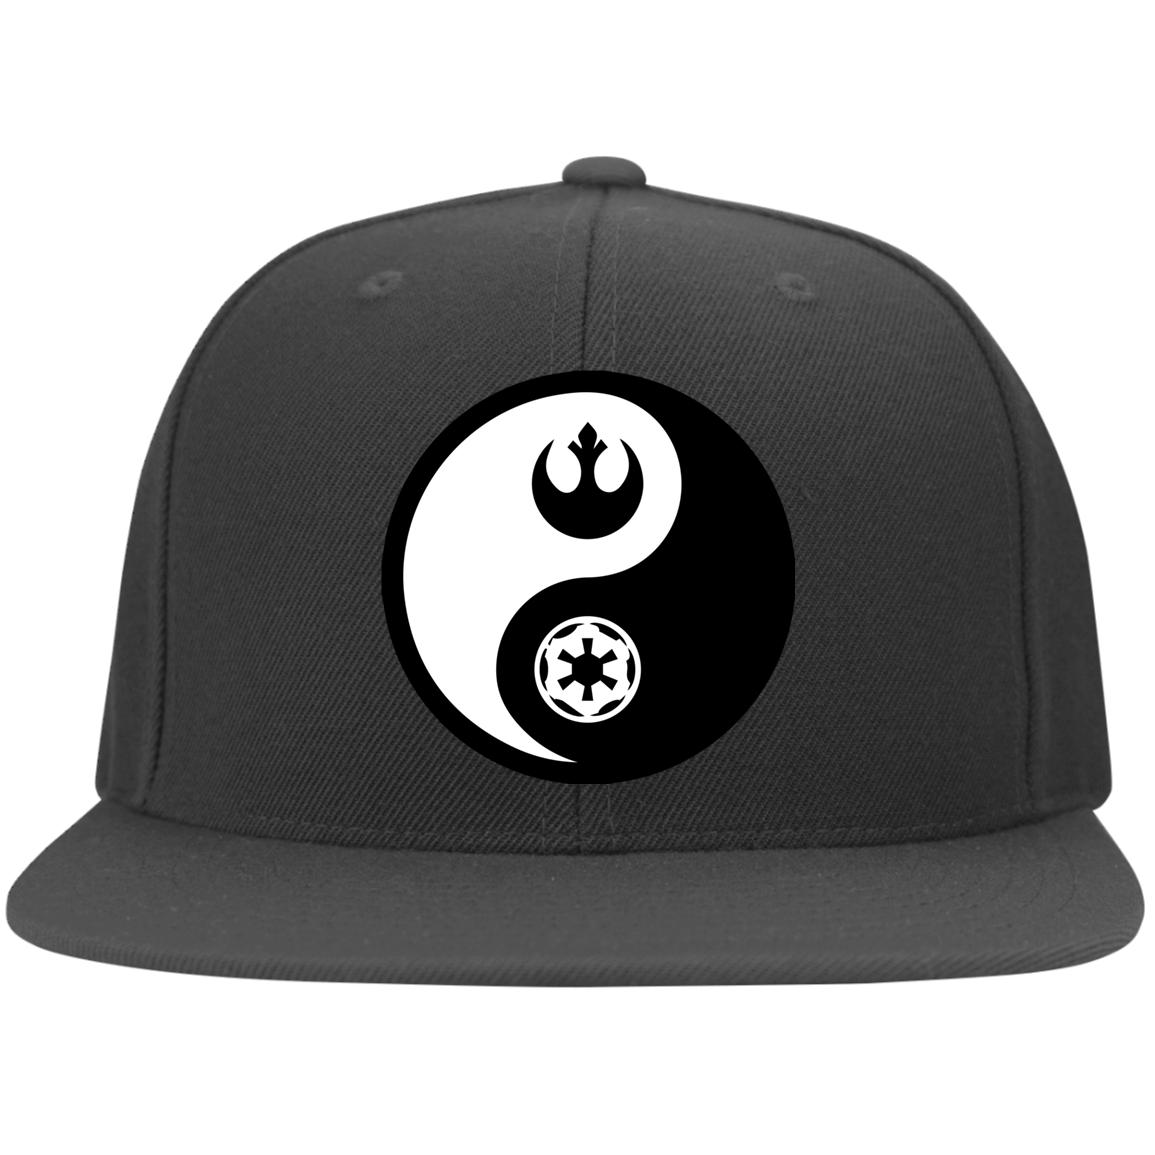 Rebel & Empire Yin Yang - Embroidered Flexfit Cap